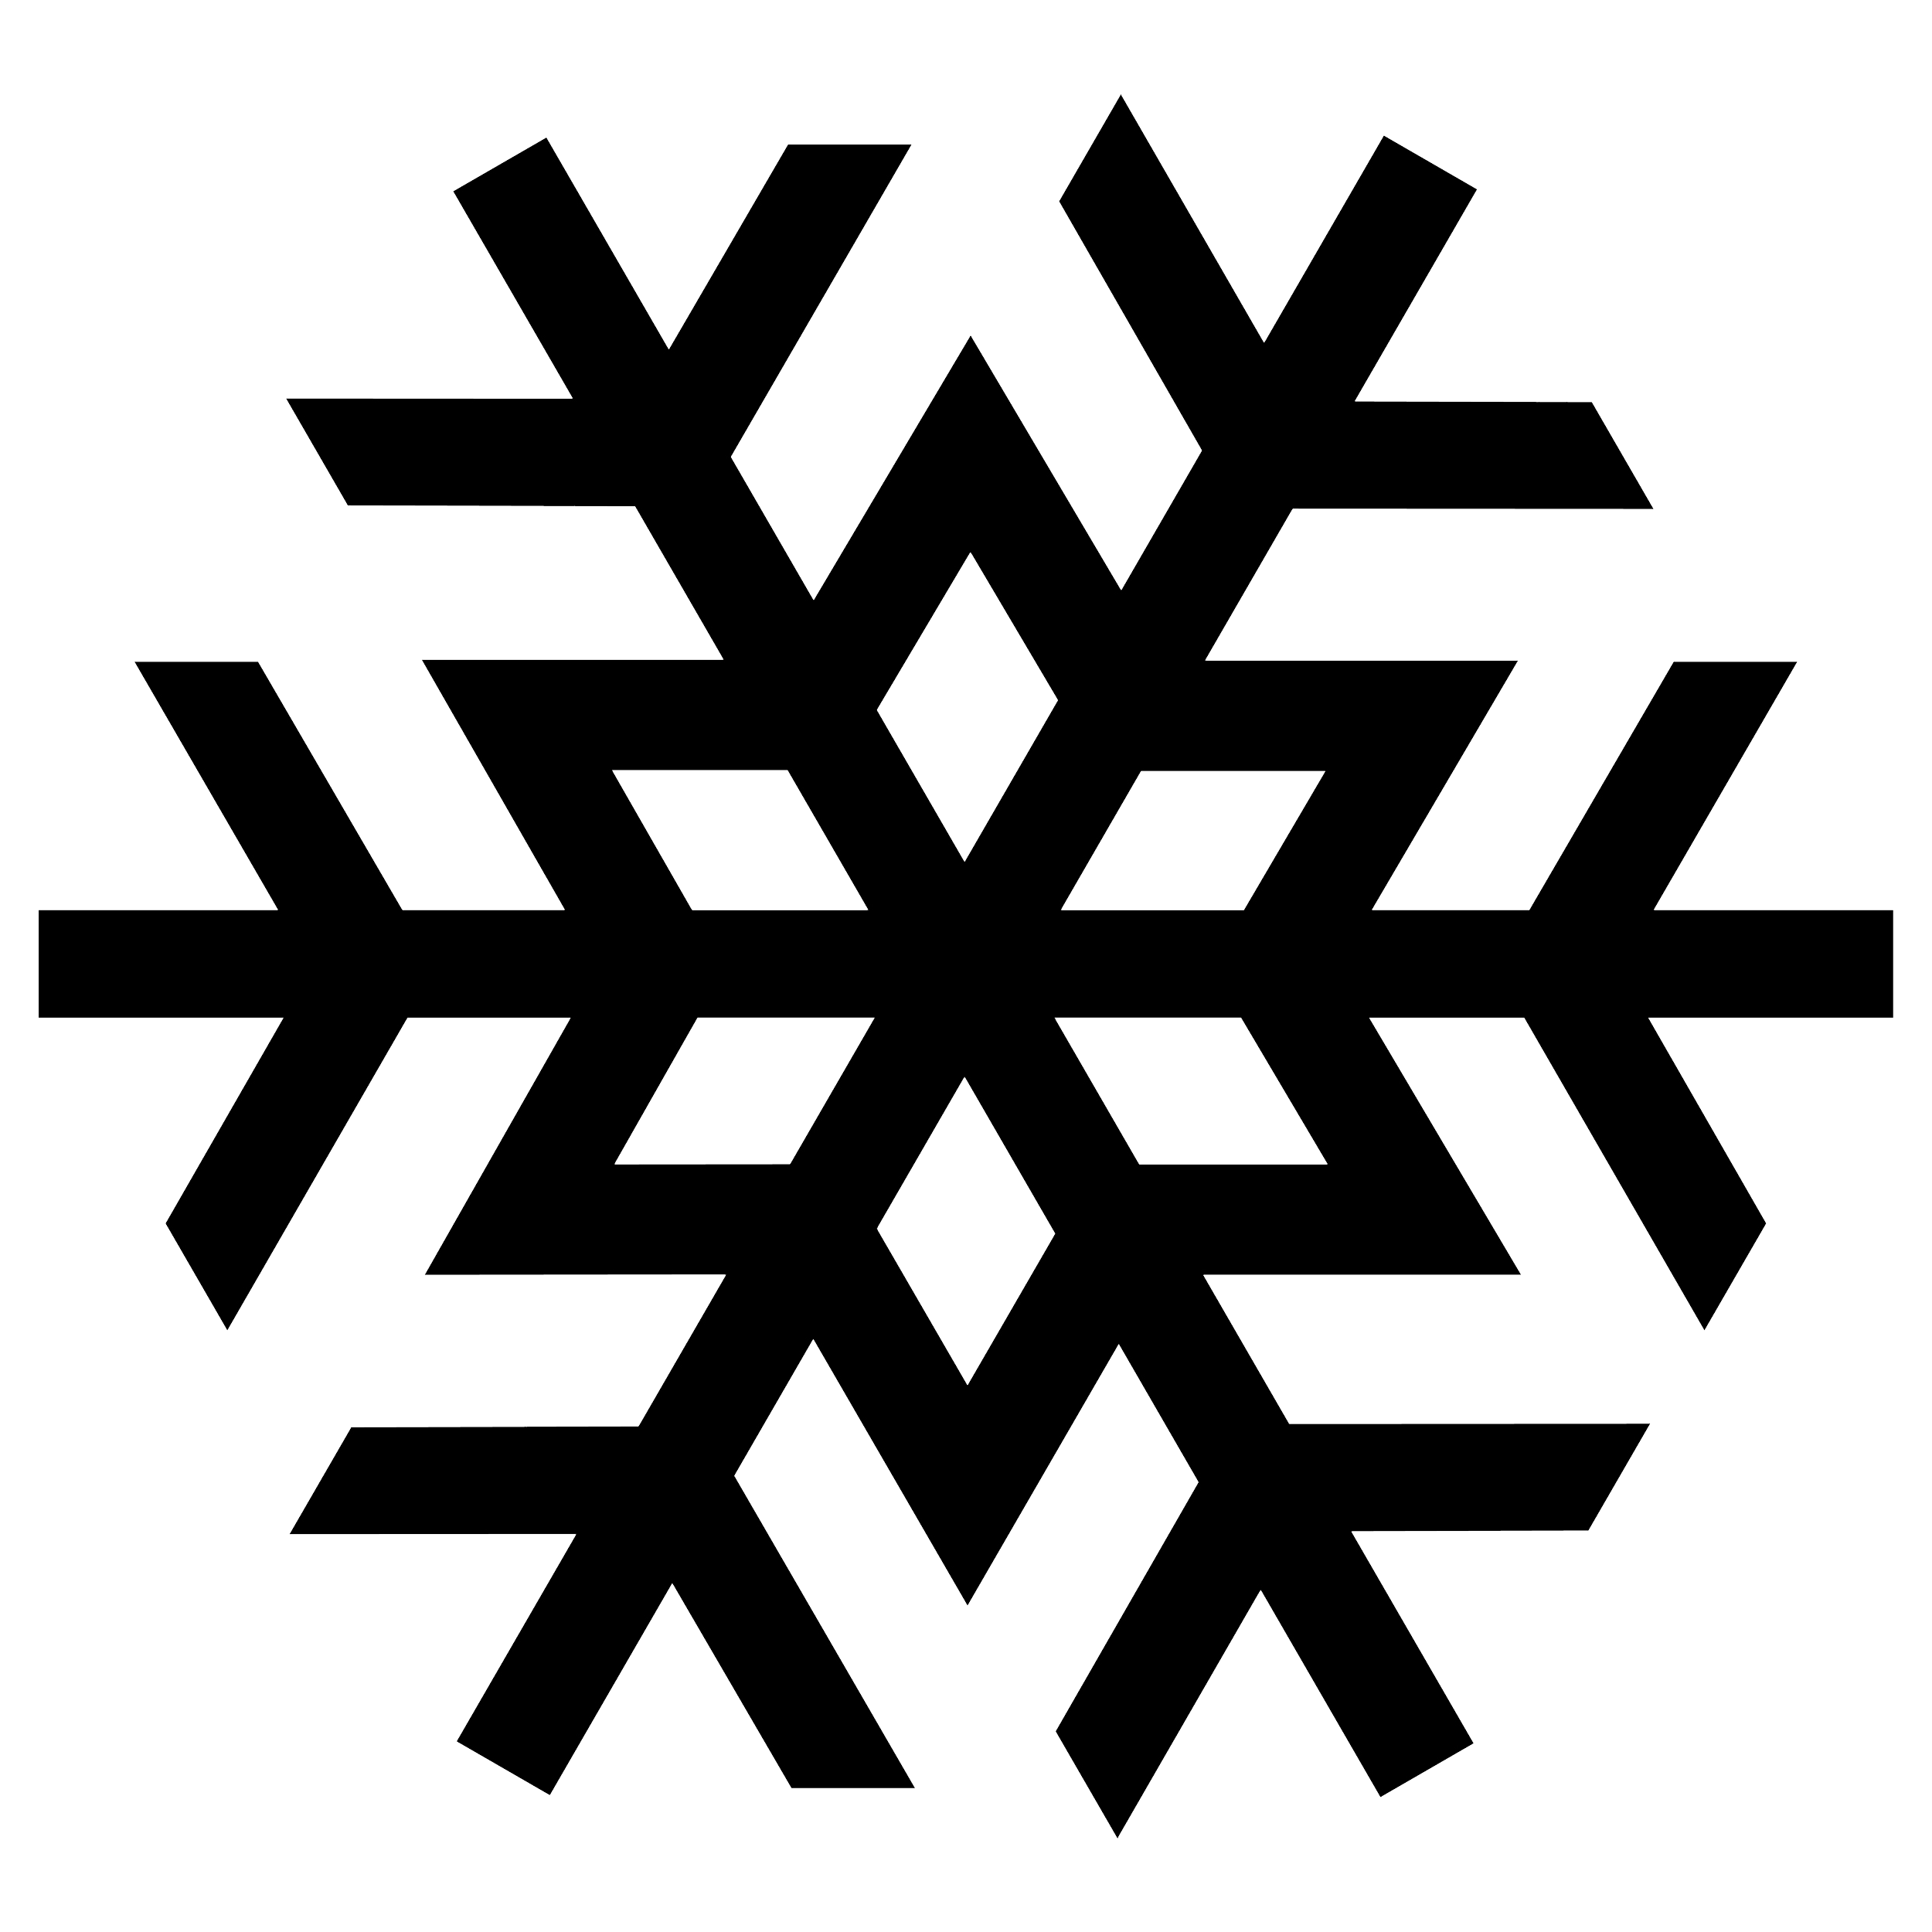 Snowflake clipart black png free download Snowflake Black transparent PNG - StickPNG png free download